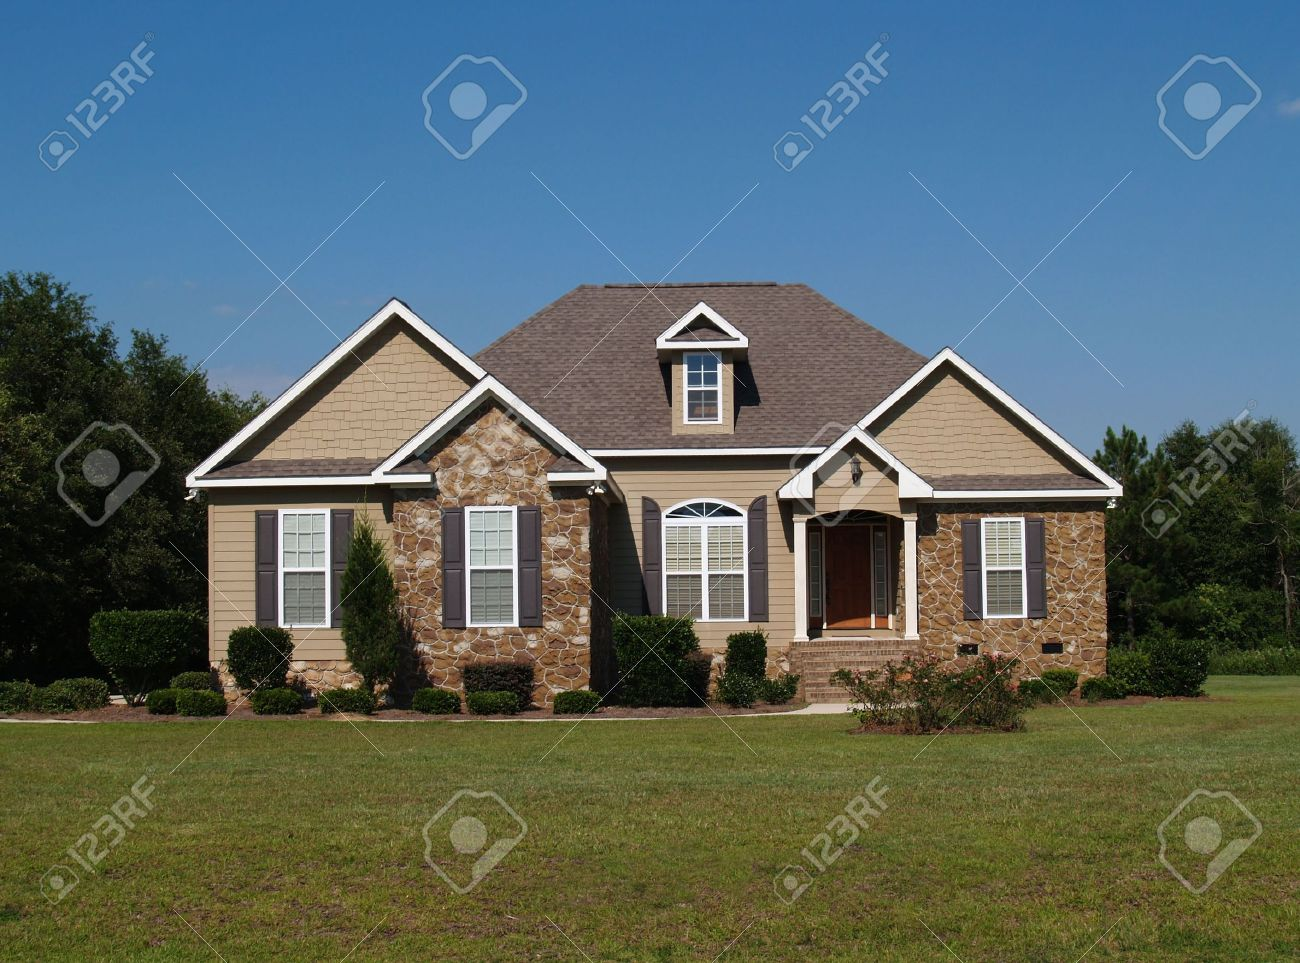 Single story stone and vinyl residential home. - 5681021